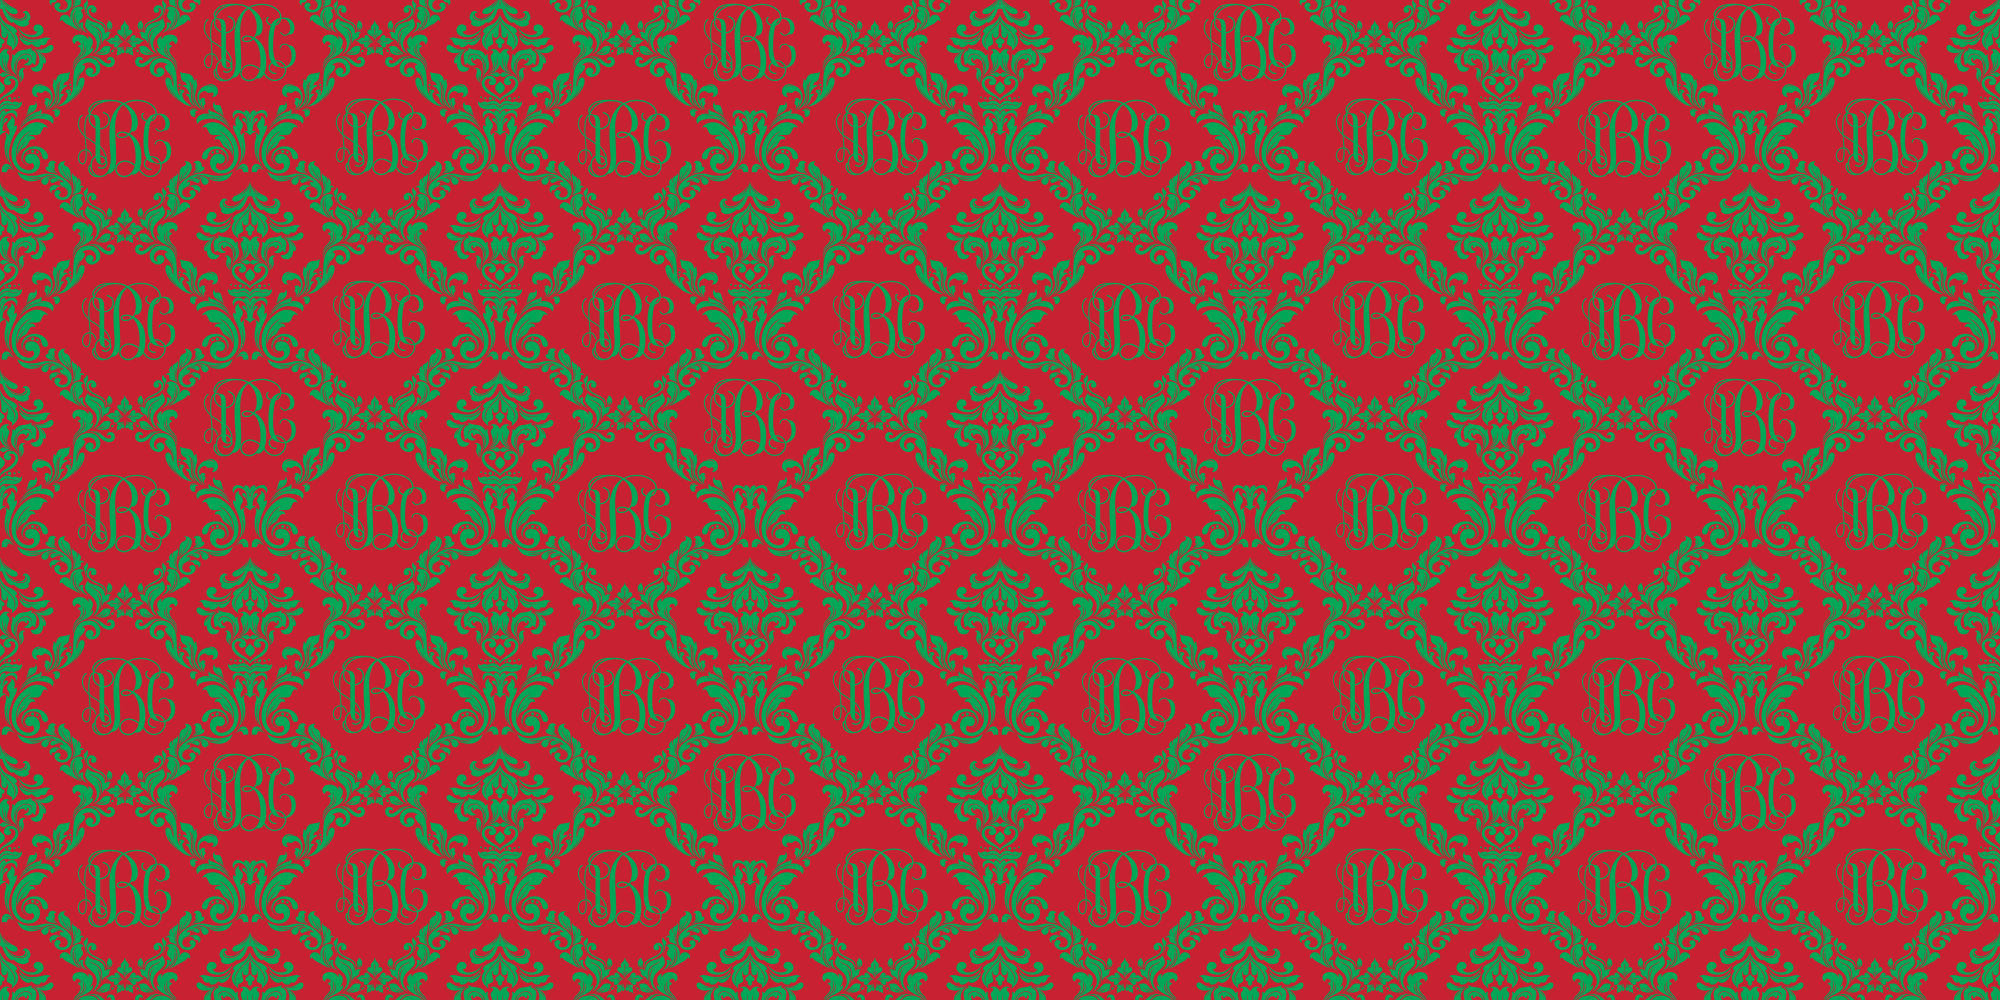 Christmas Wrapping Paper 3 High Resolution Wallpaper